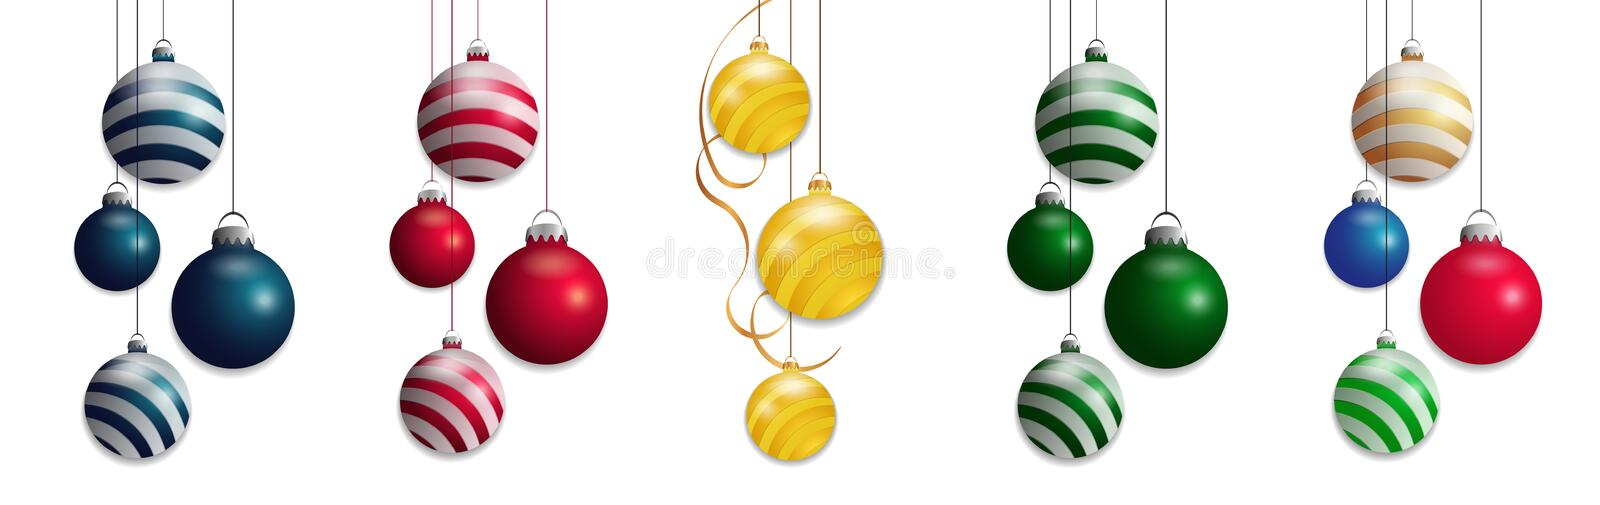 Set isolated Christmas balls. Colorful baubles element design. Vector vector illustration